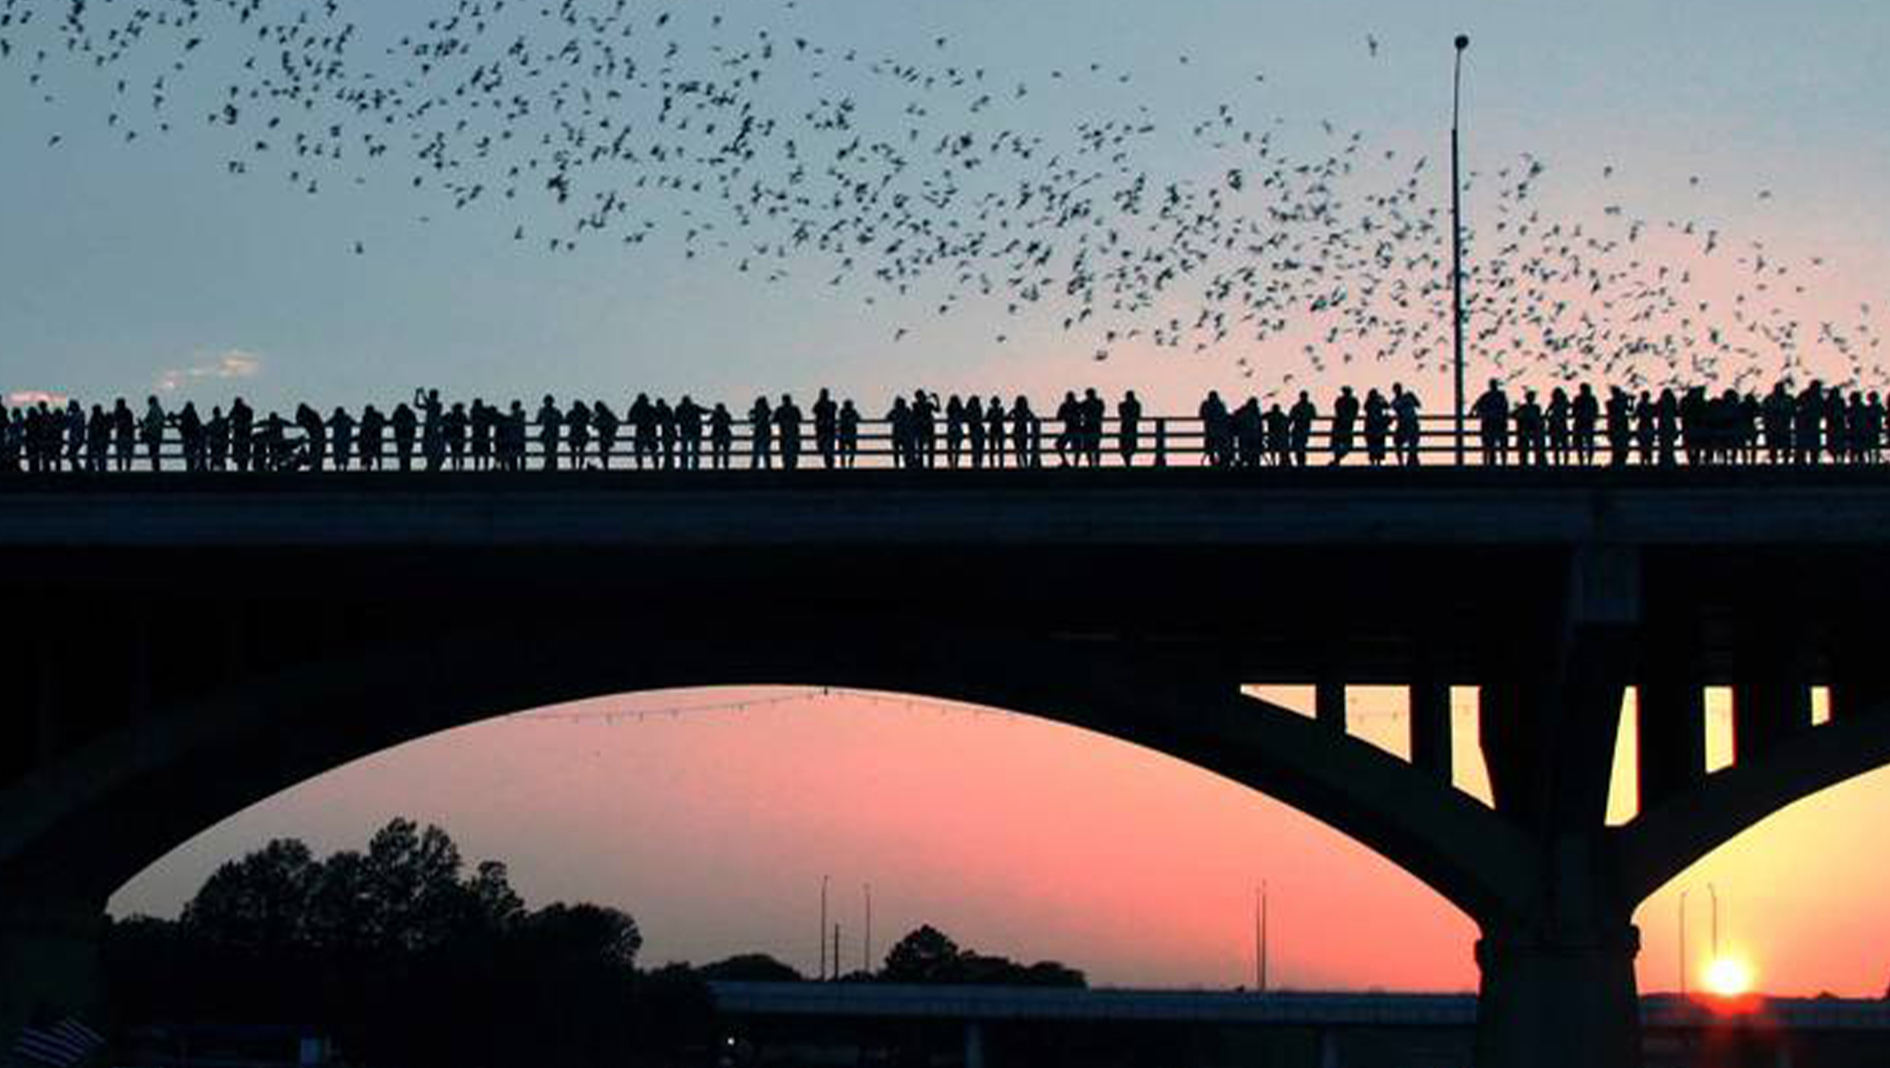 Bats flying over a bridge at sunset in Austin, Texas.